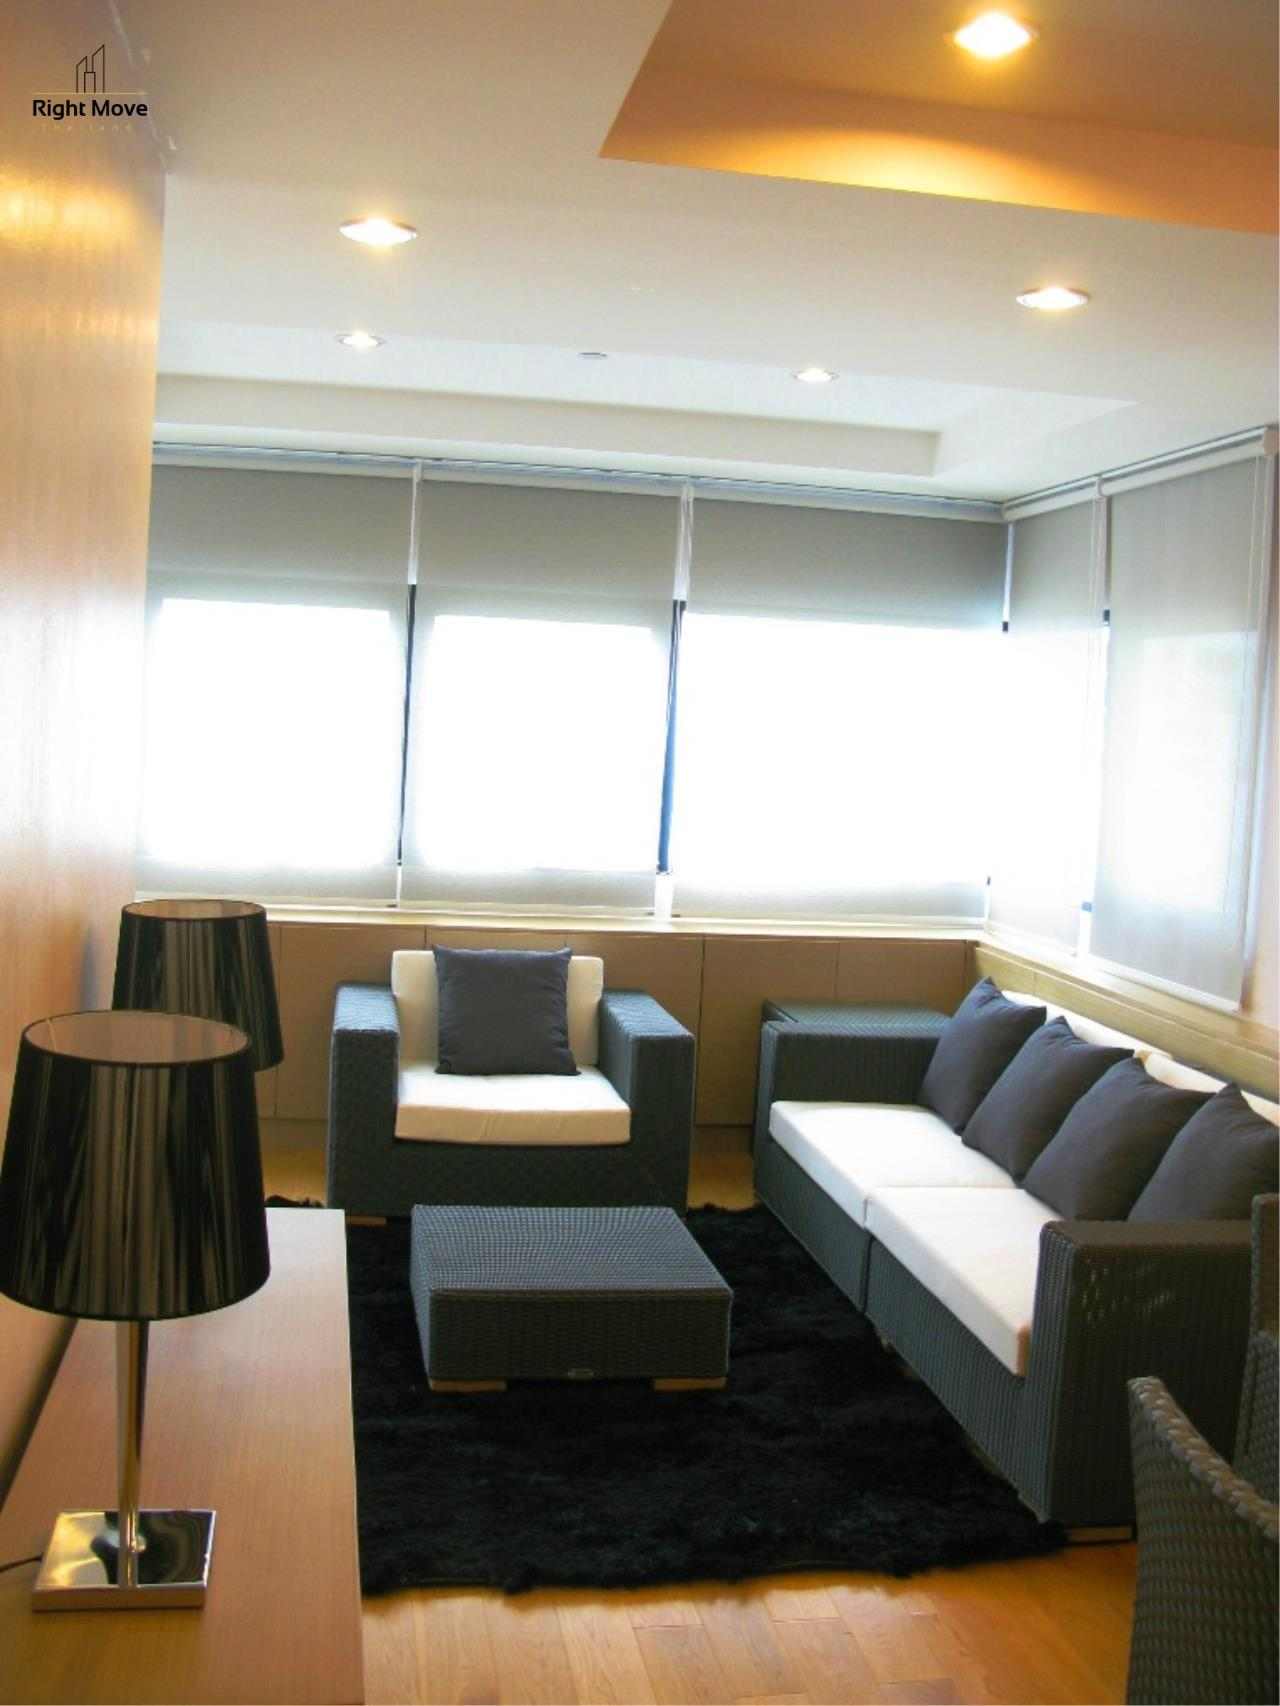 Right Move Thailand Agency's CS2423 Sathorn Garden For sale 12,000,000 THB 1 Bedroom 78.70 Sqm  1